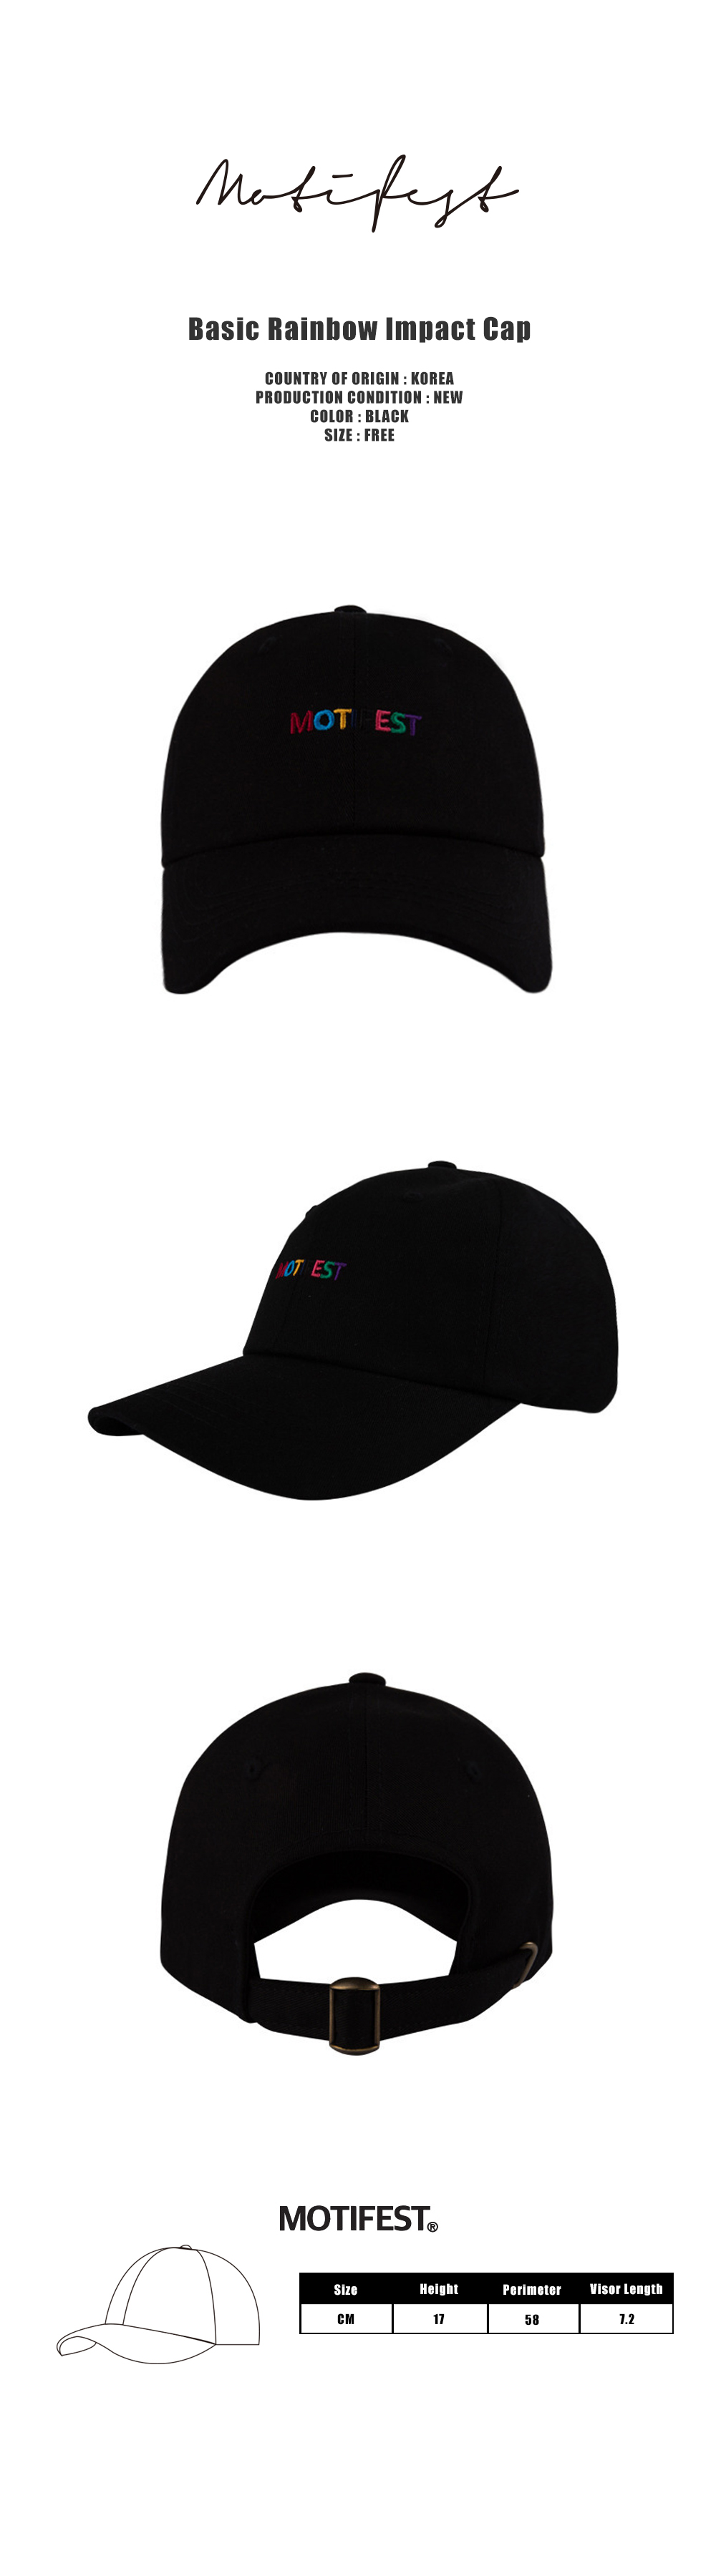 Basic Rainbow Impact Cap Black-1000.jpg